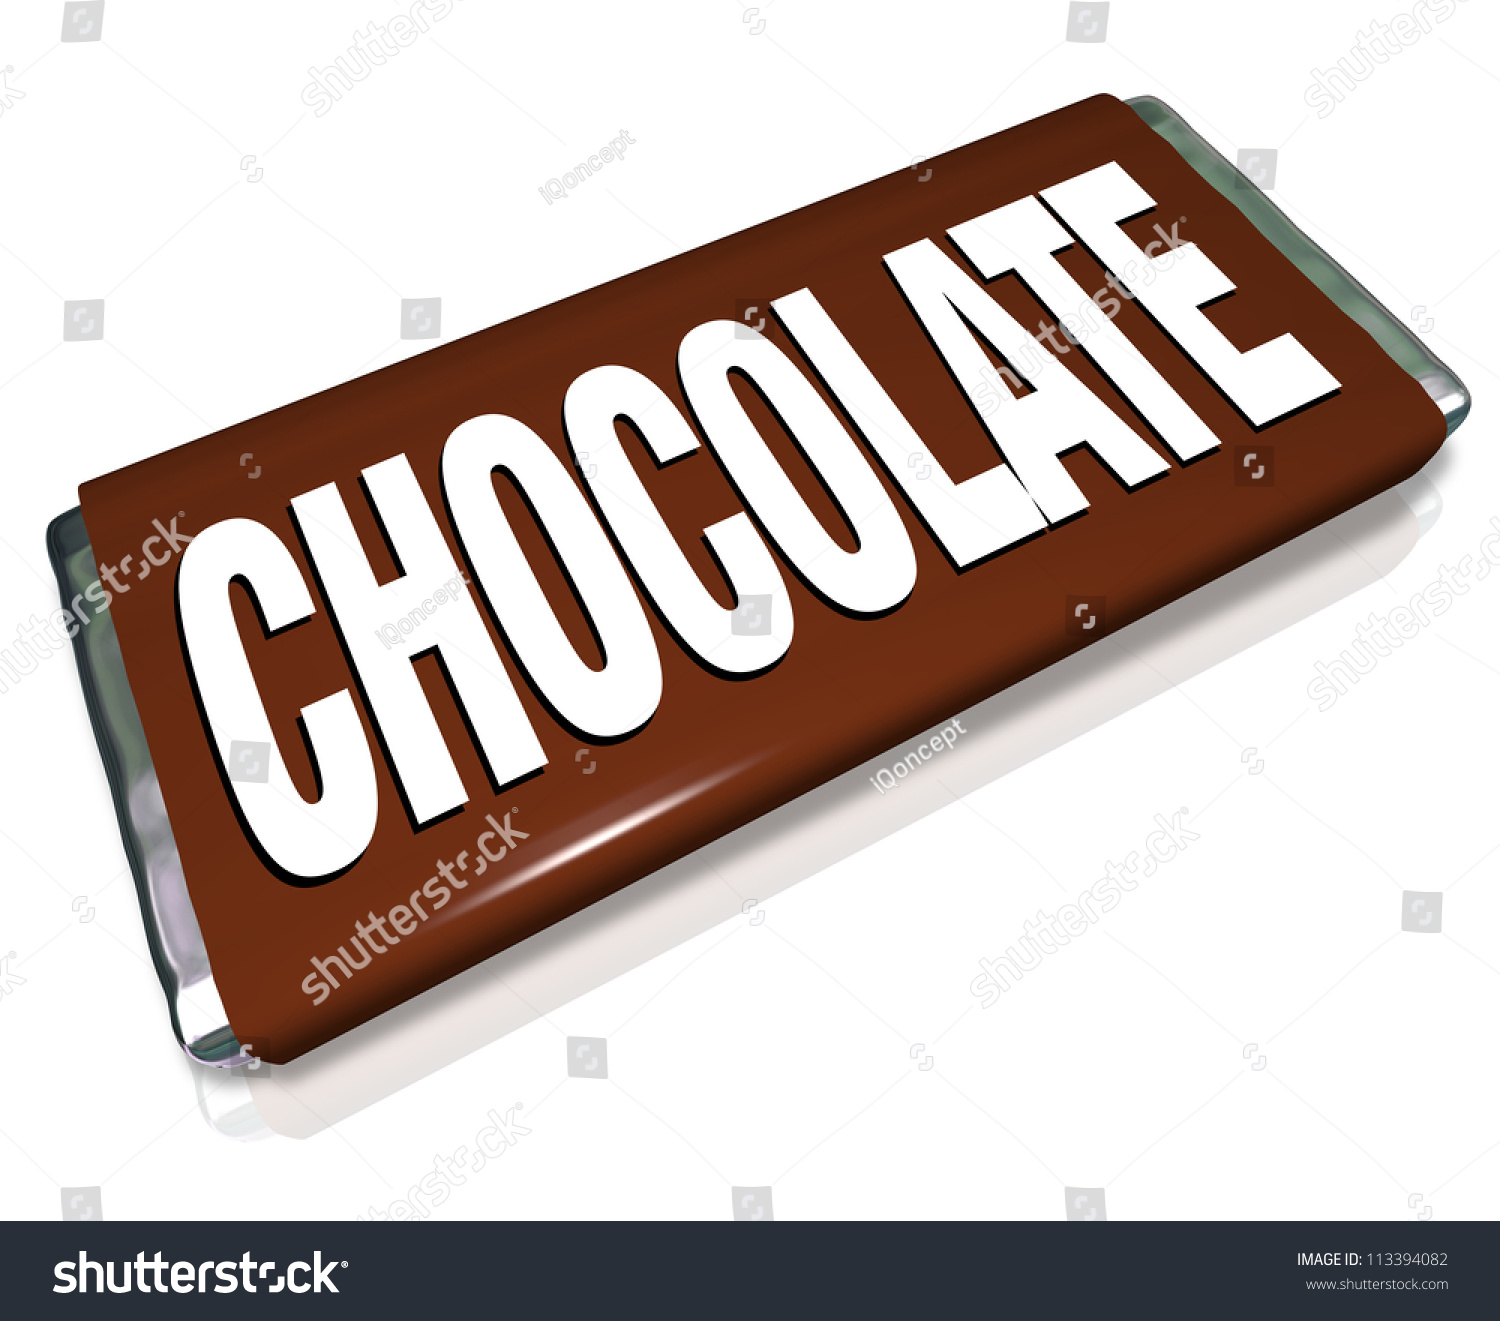 A chocolate bar in brown and silver foil wrapper junk - Image of bar ...